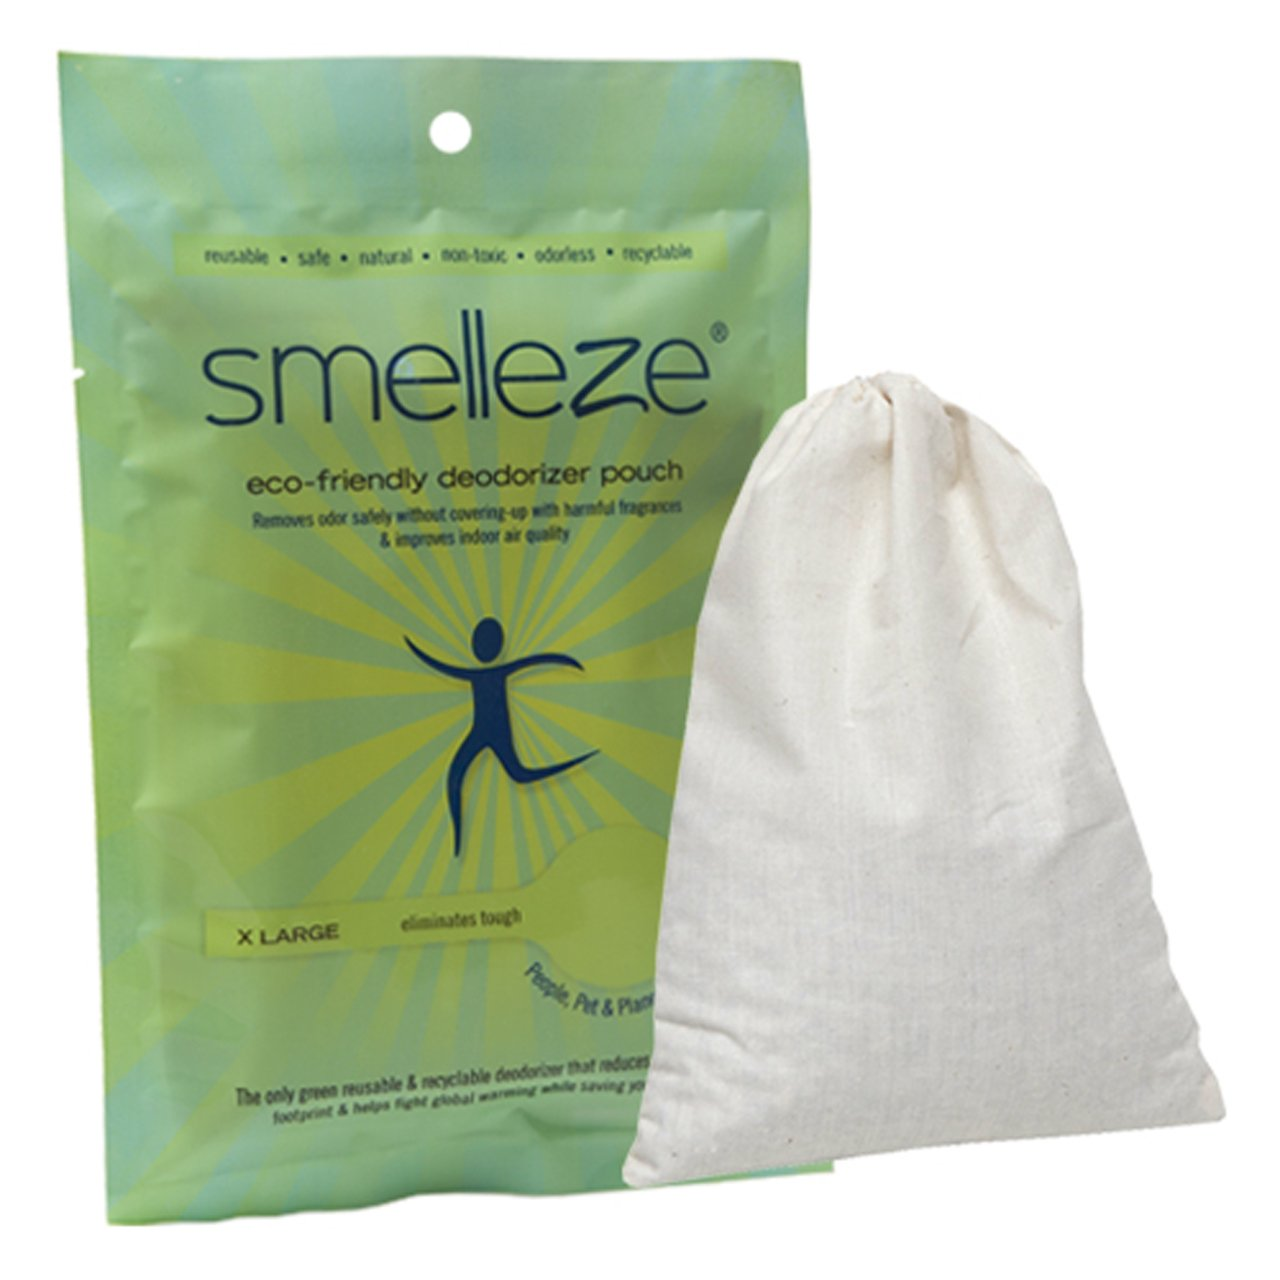 SMELLEZE Reusable Children Smell Removal Deodorizer Pouch: Rid Kid Odor Without Chemicals in 300 Sq. Ft. by SMELLEZE